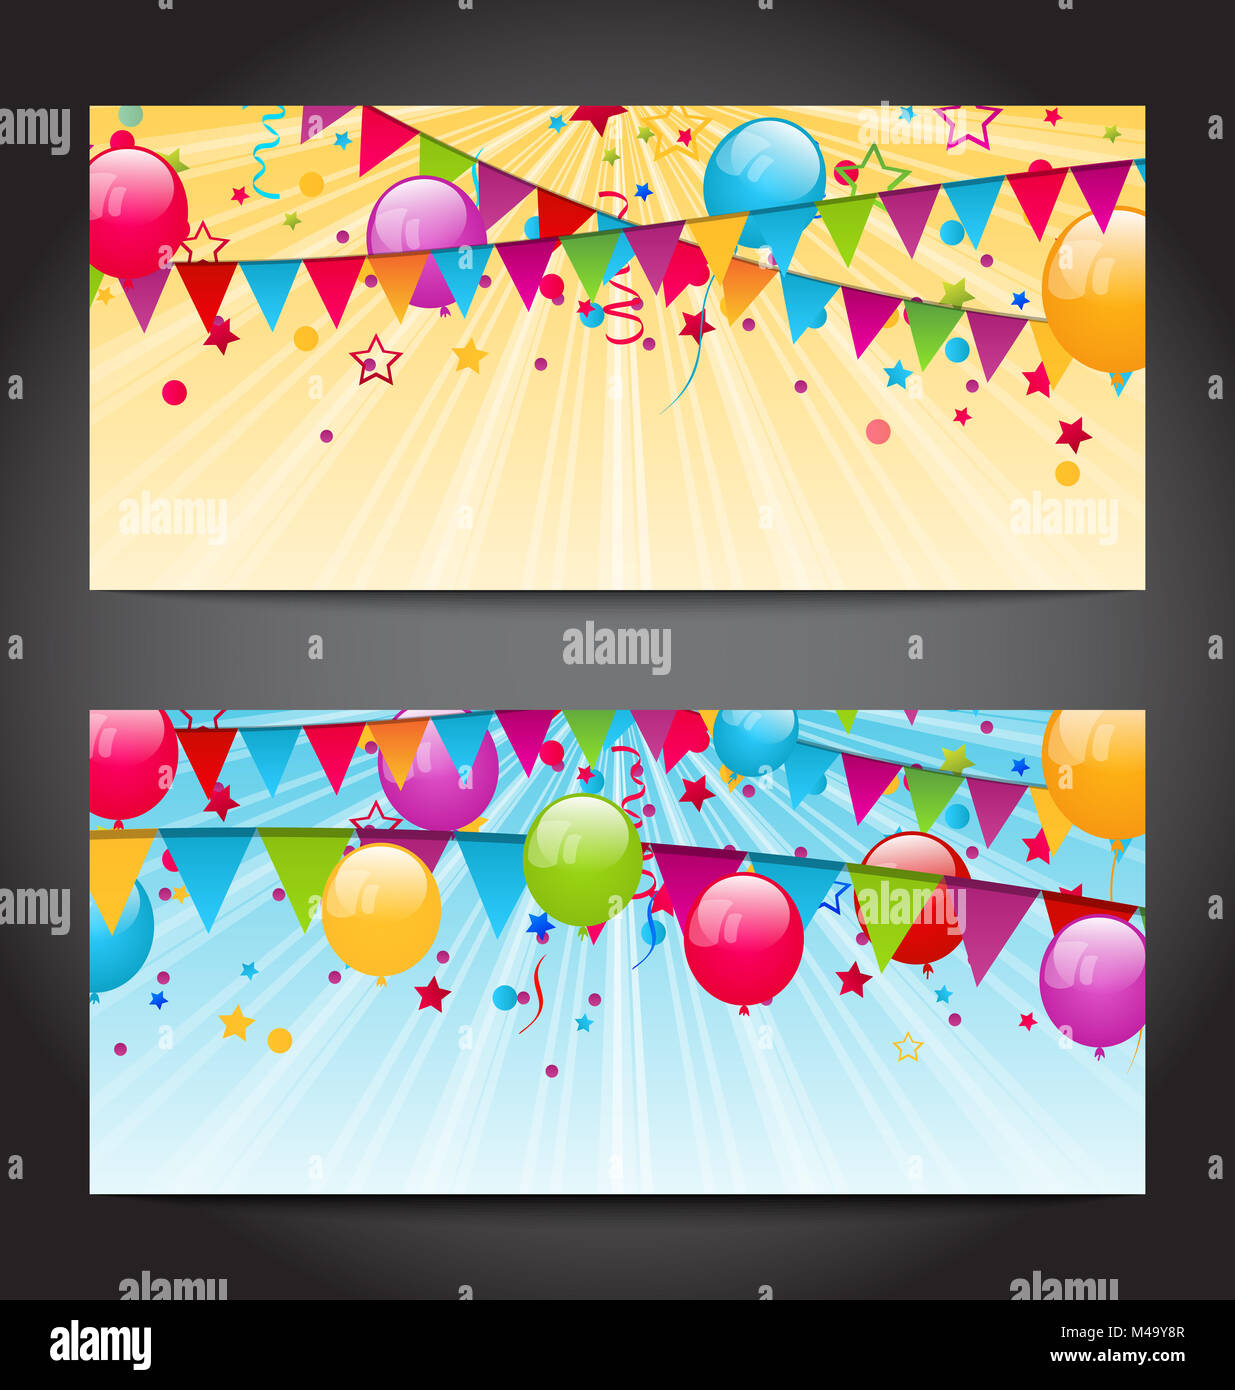 Abstract banners with colorful balloons, hanging flags and confe - Stock Image